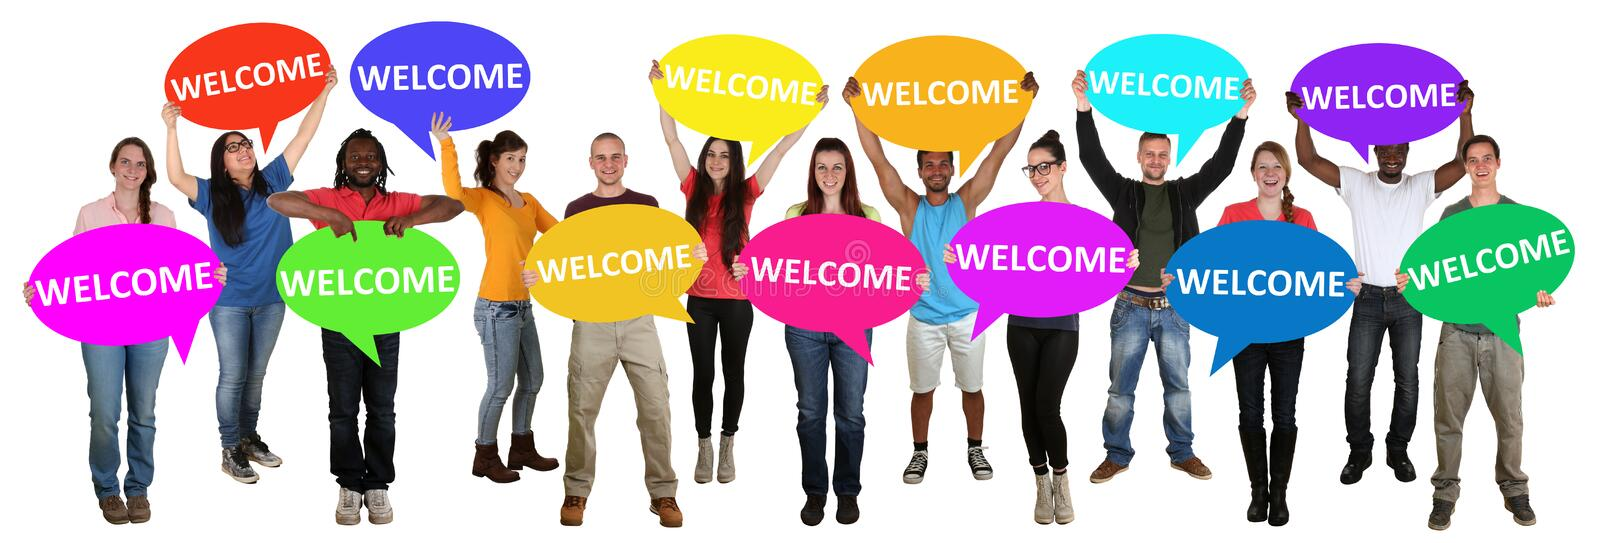 Refugees welcome group of young multi ethnic people holding speech bubbles royalty free stock image